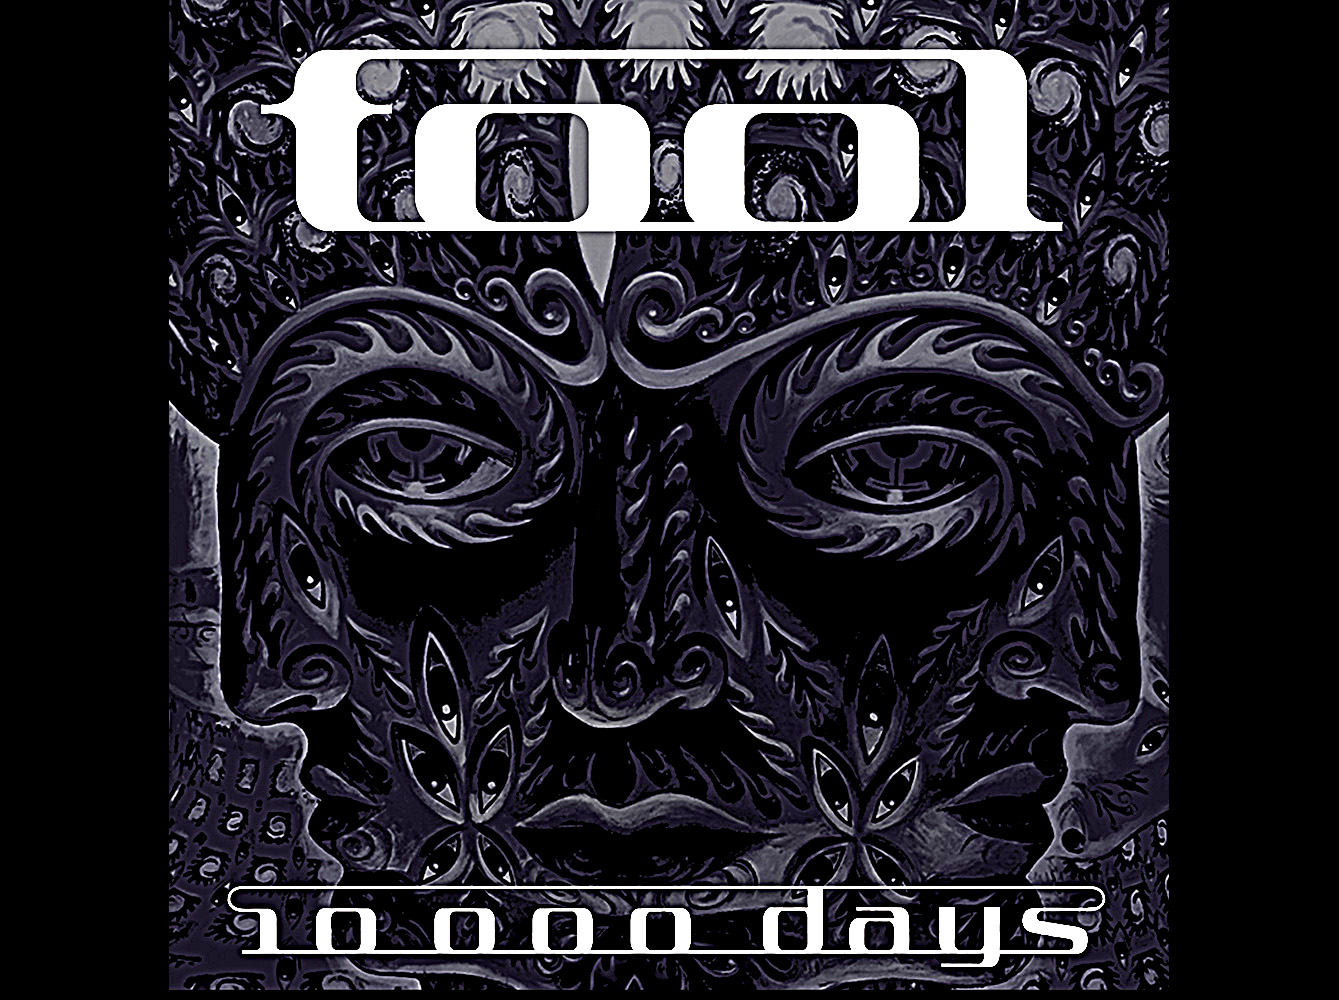 tool10000dayscover 1